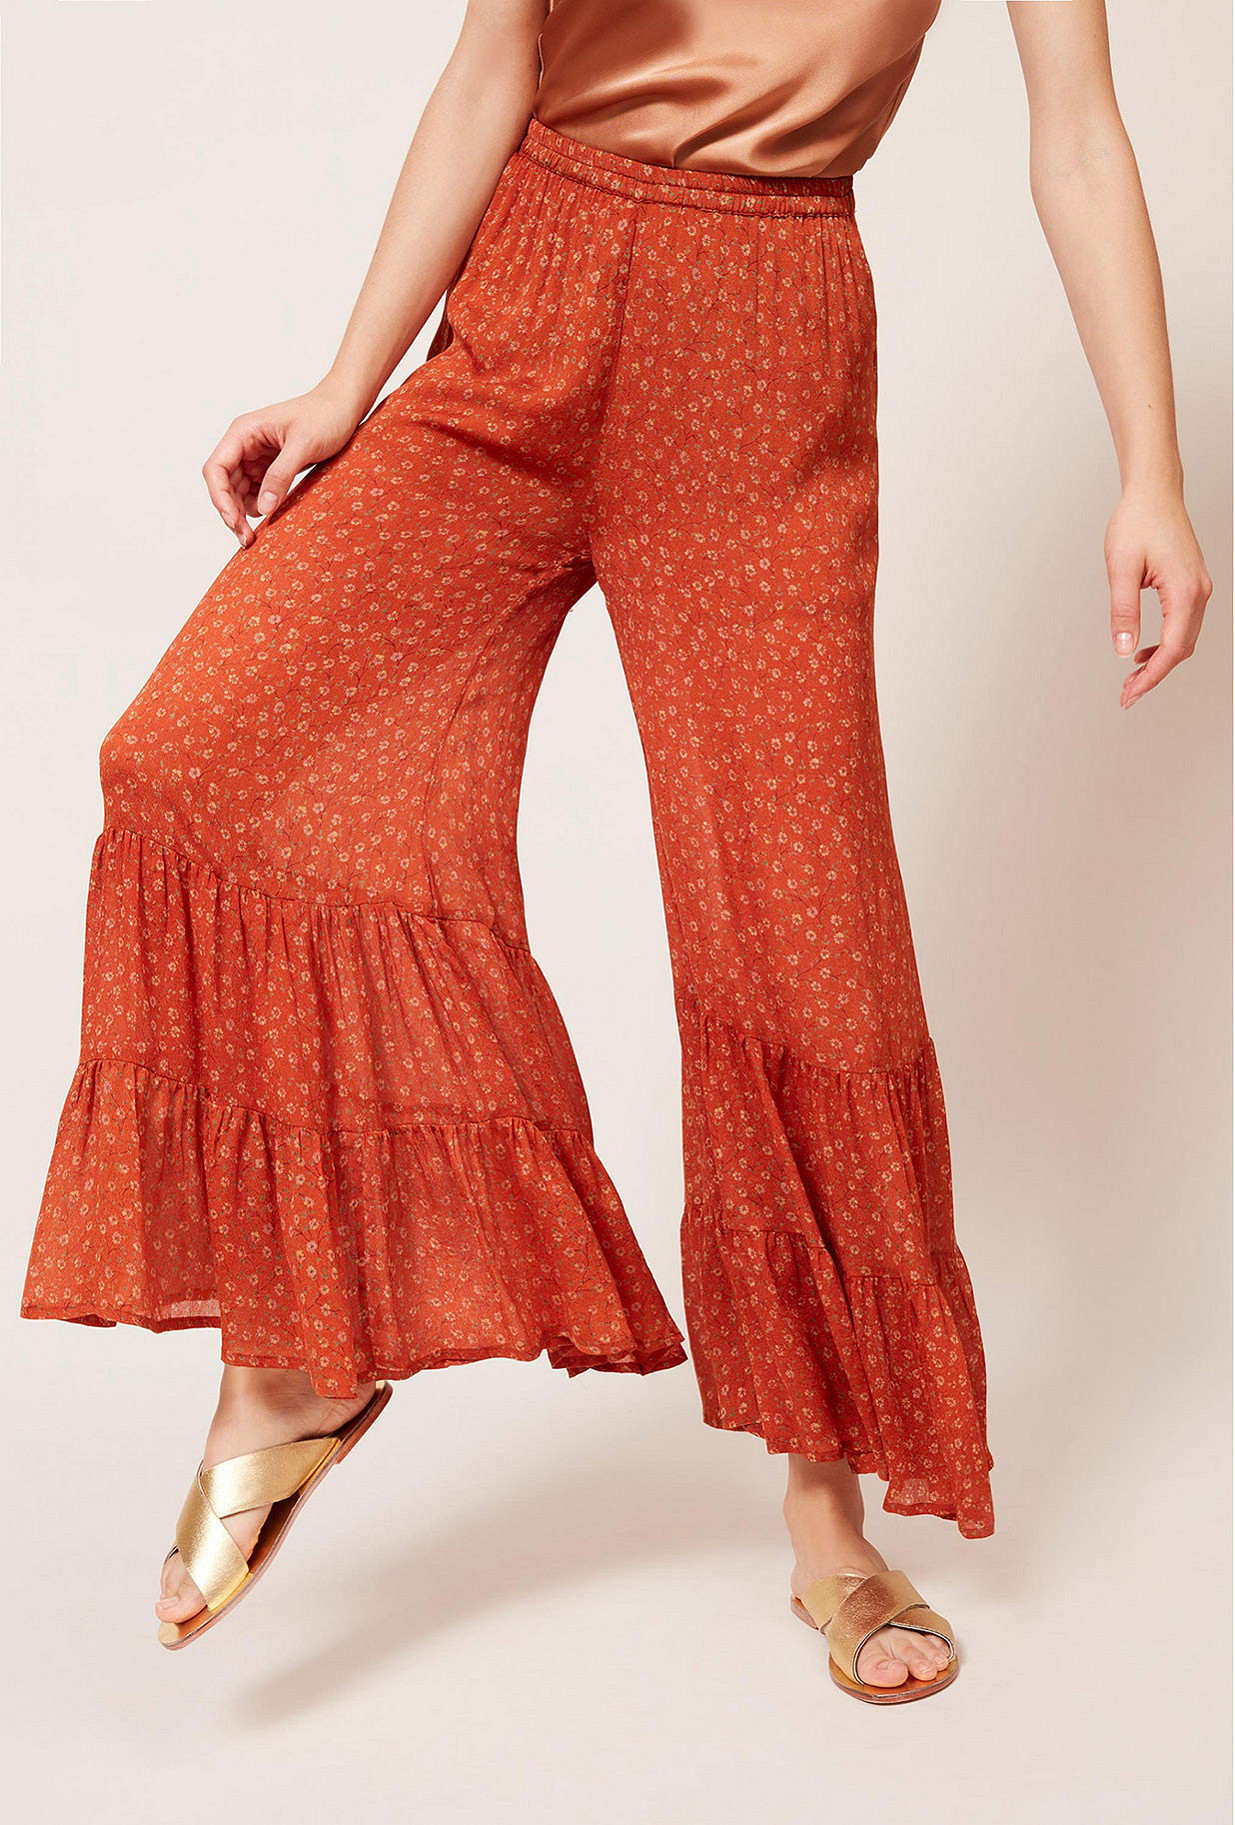 Pantalon Orange Fanfan Mes Demoiselles Paris